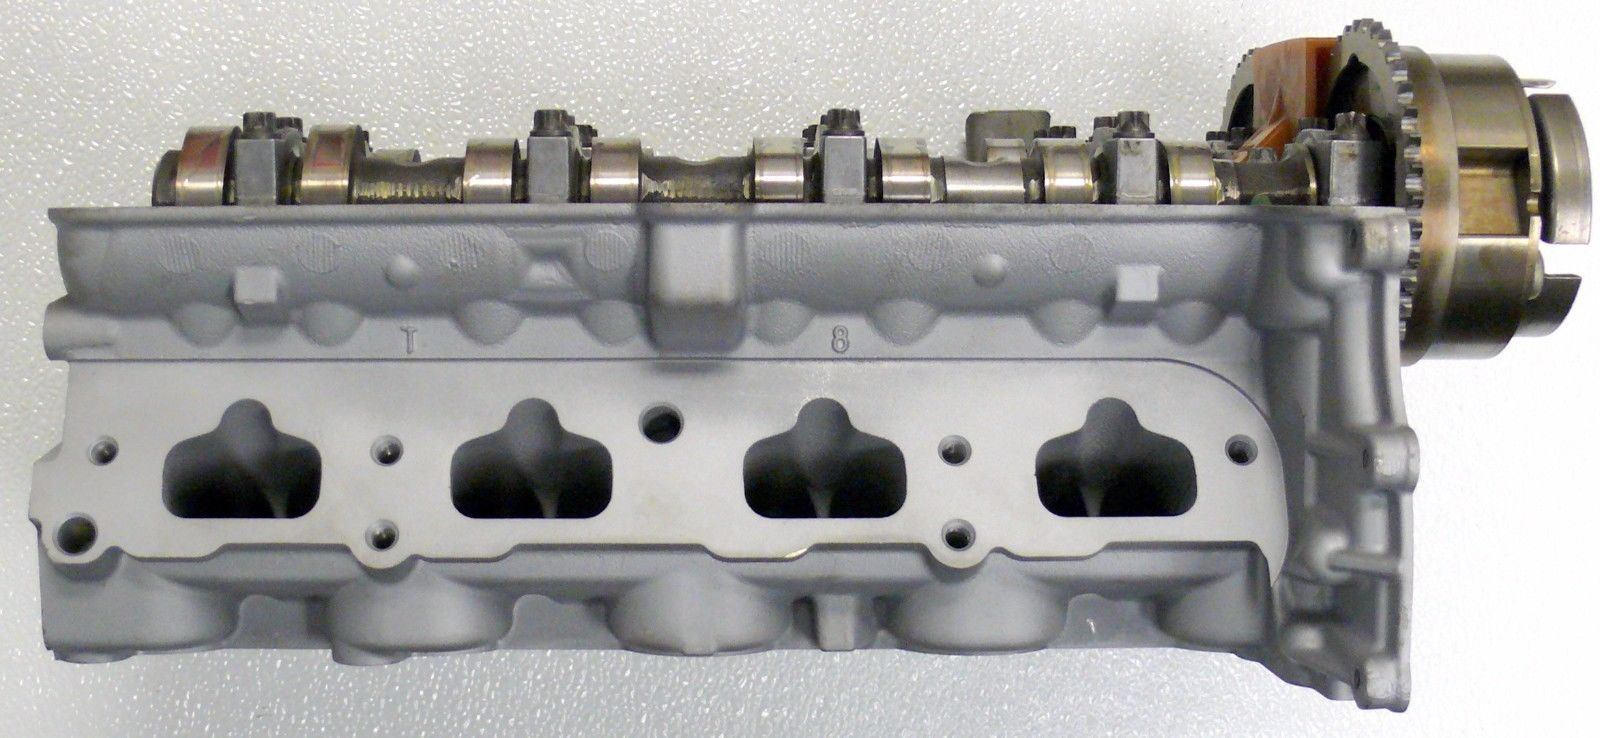 GM CHEVY CRUZE AVEO SONIC BUICK 1 4 DOHC CAST#291 CYLINDER HEAD 11-14 no  core